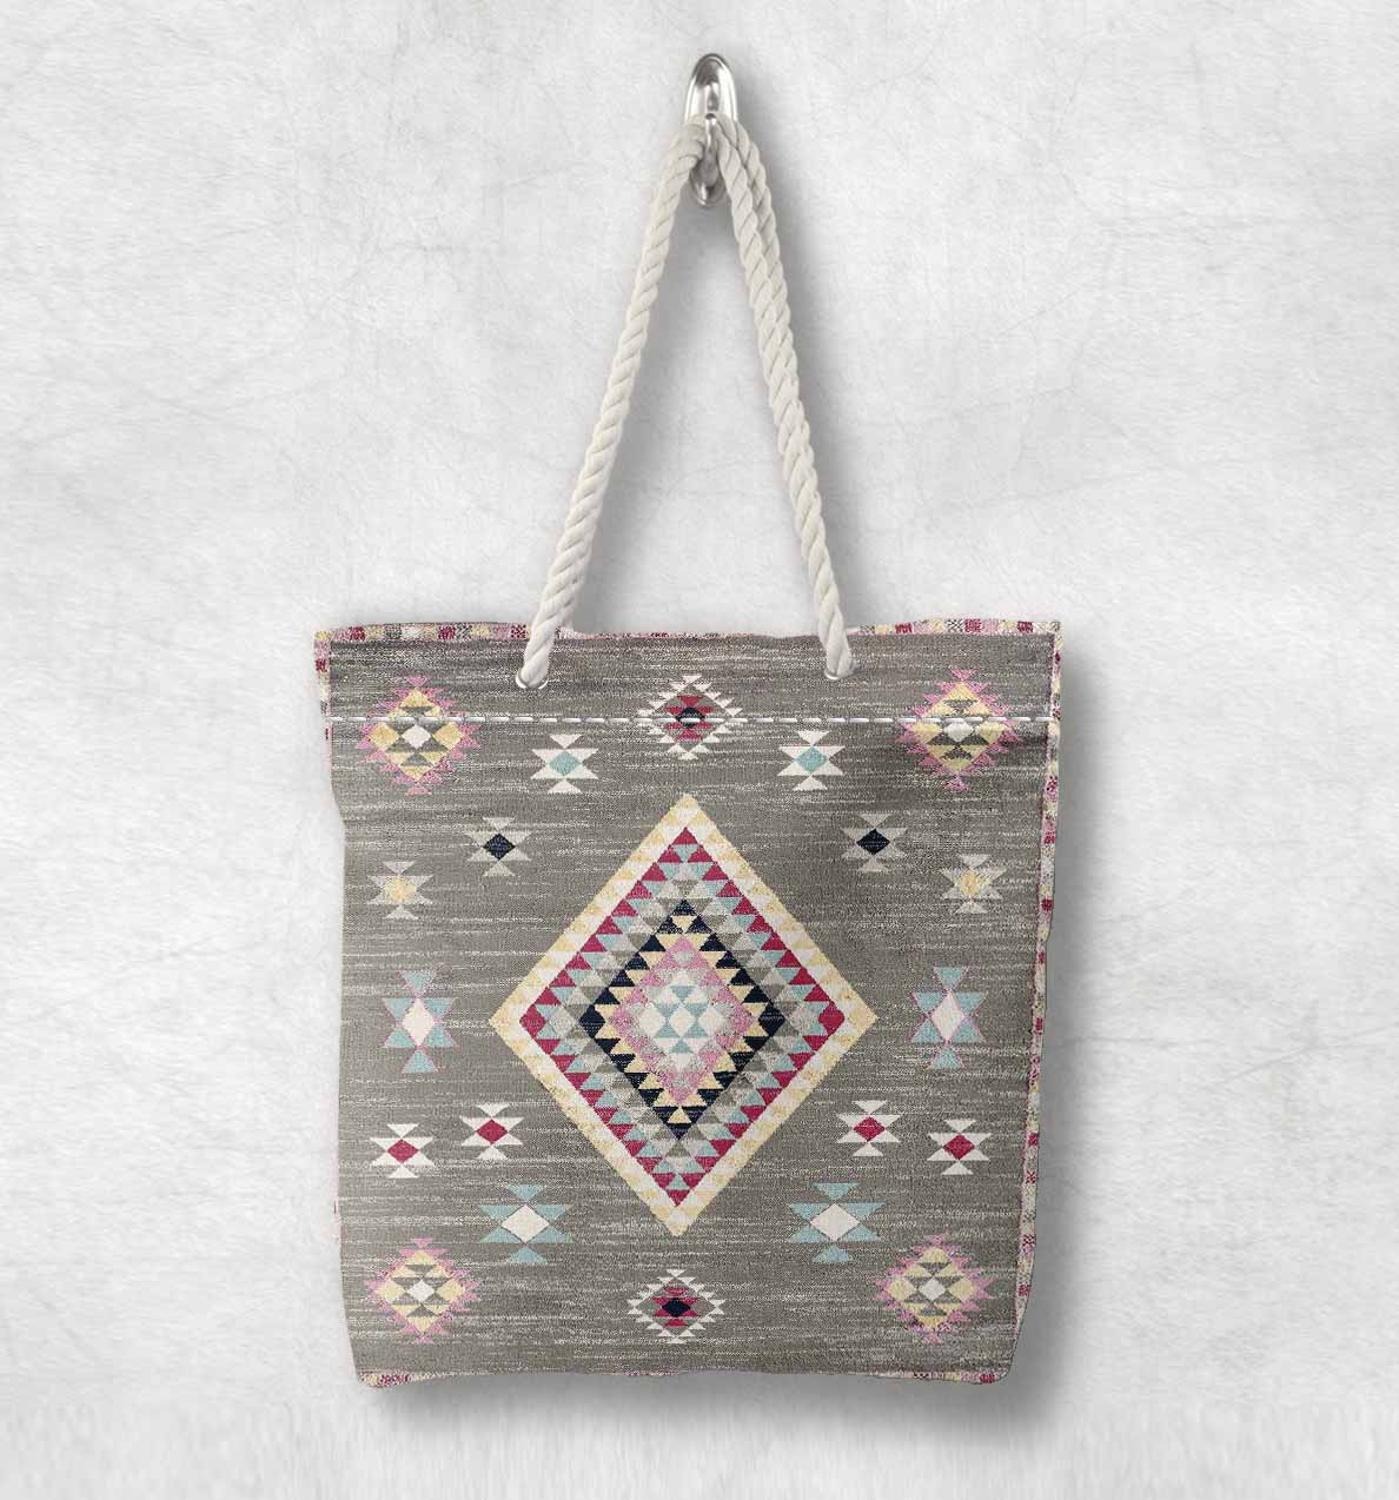 Else Gray Pink Tiles Turkish Kilim Design New Fashion White Rope Handle Canvas Bag Cotton Canvas Zippered Tote Bag Shoulder Bag